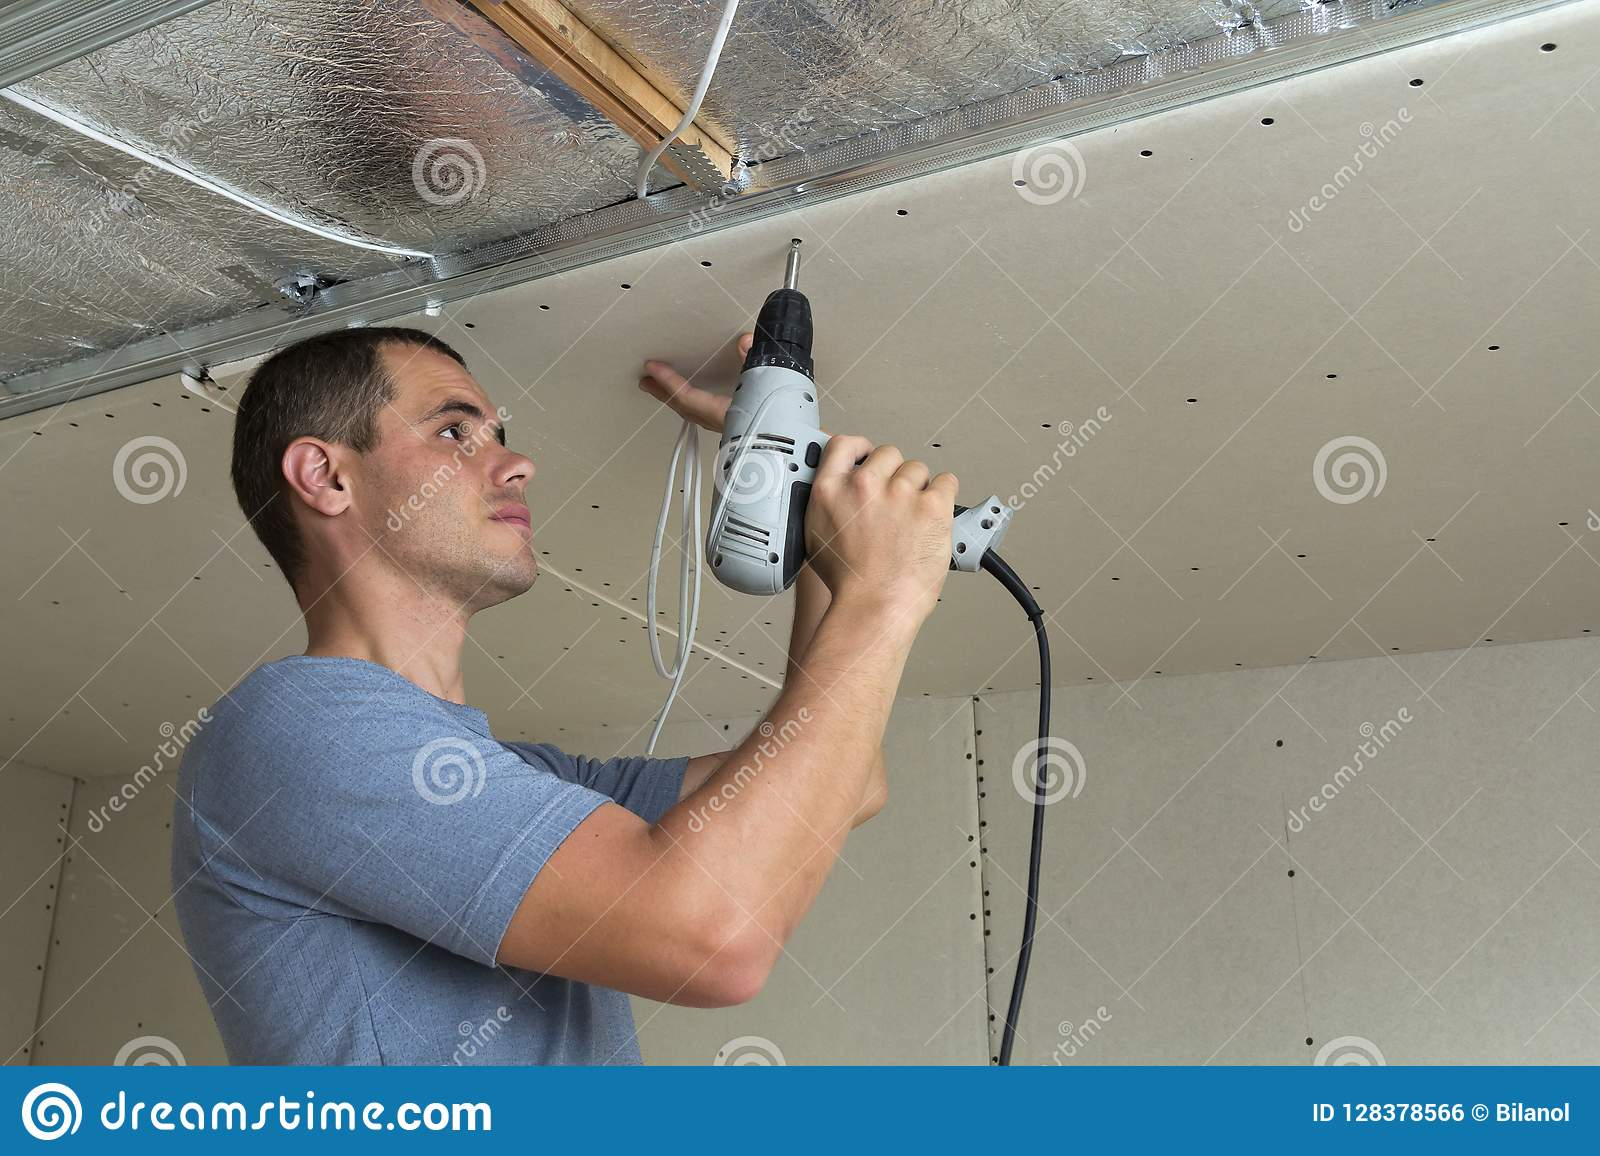 Young Man Fixing Drywall Suspended Ceiling To Metal Frame Using Pics Photos Do It Yourself Electrician Electrical Screwdriver